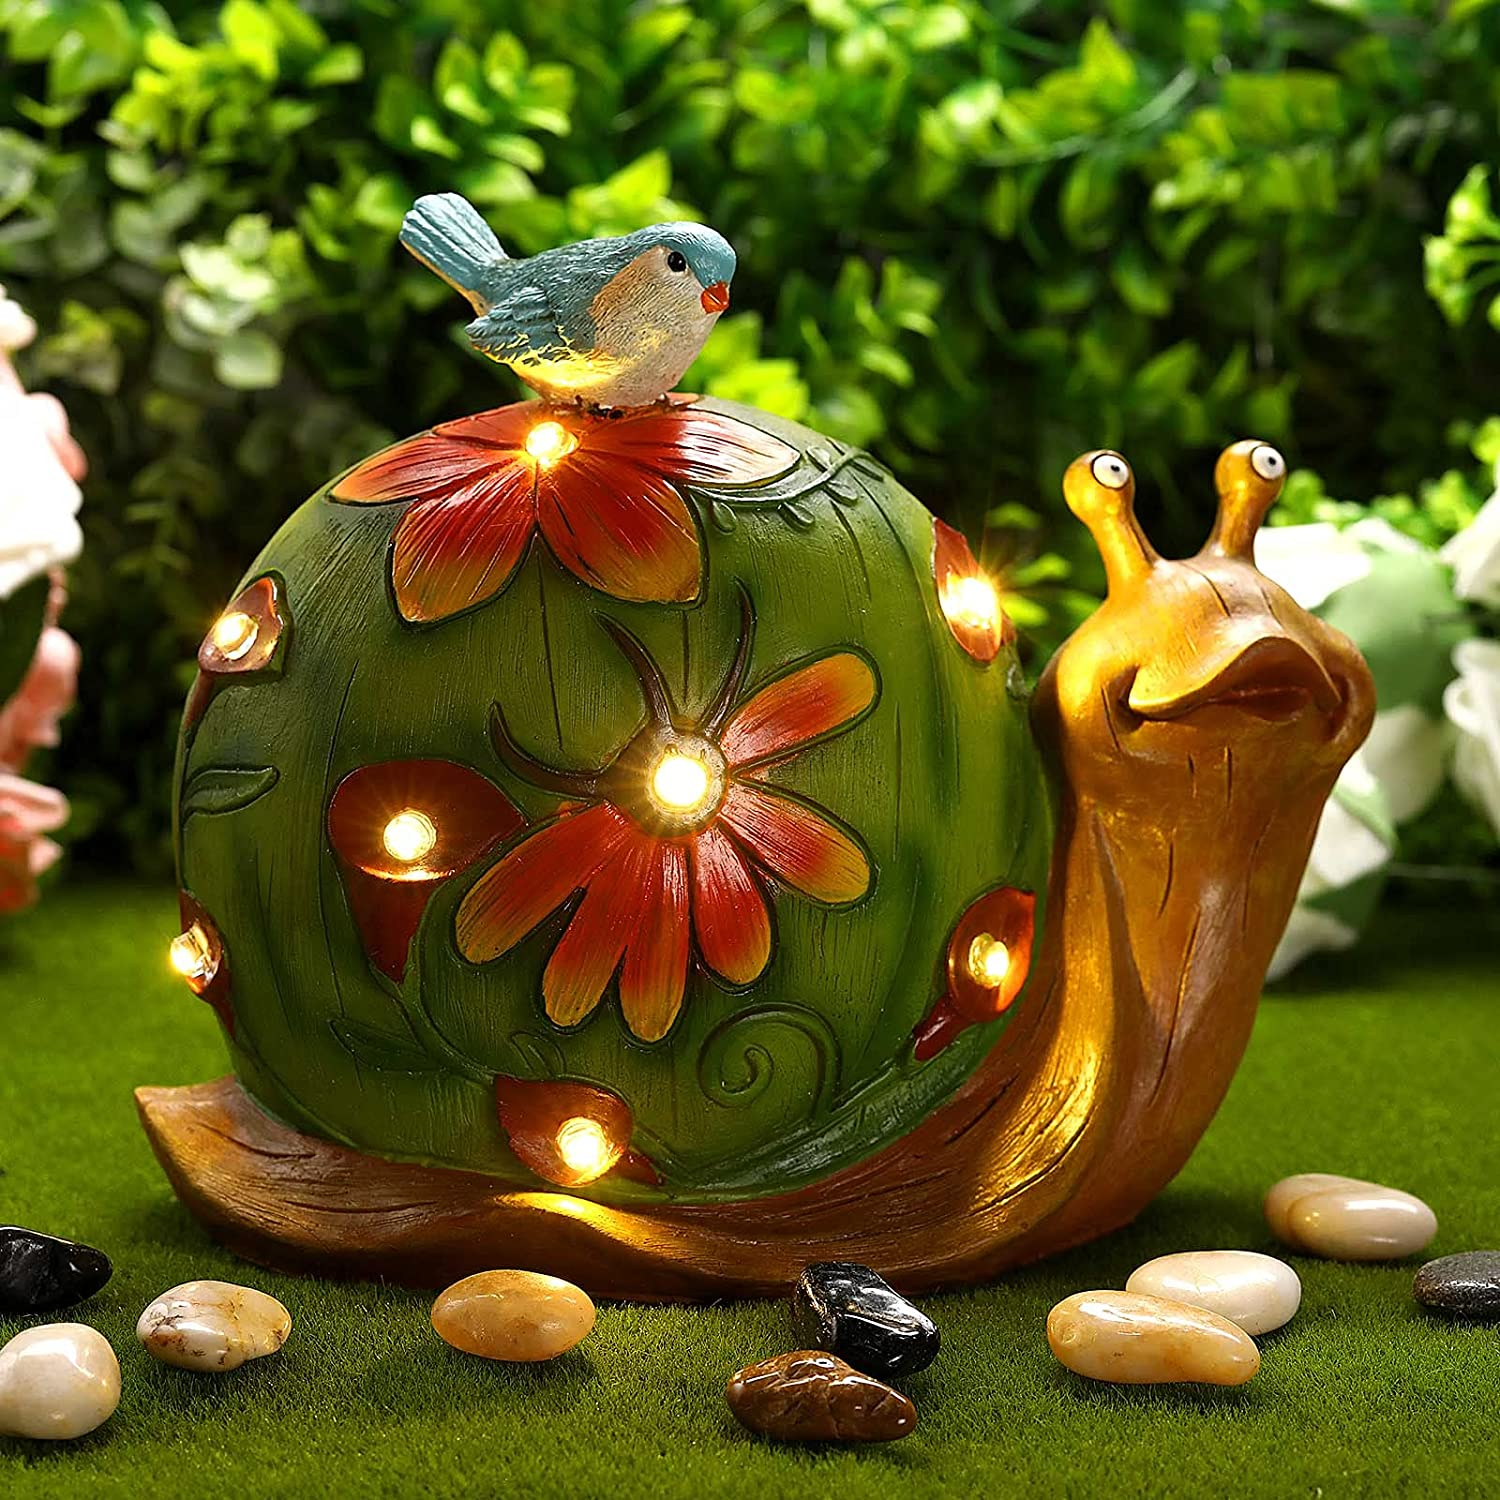 Garden Resin Snail Statue with Led Lights Outdoor Garden Waterproof Figurine Decoration for Patio, Lawn, Yard, Housewarming Ornament (Snail)